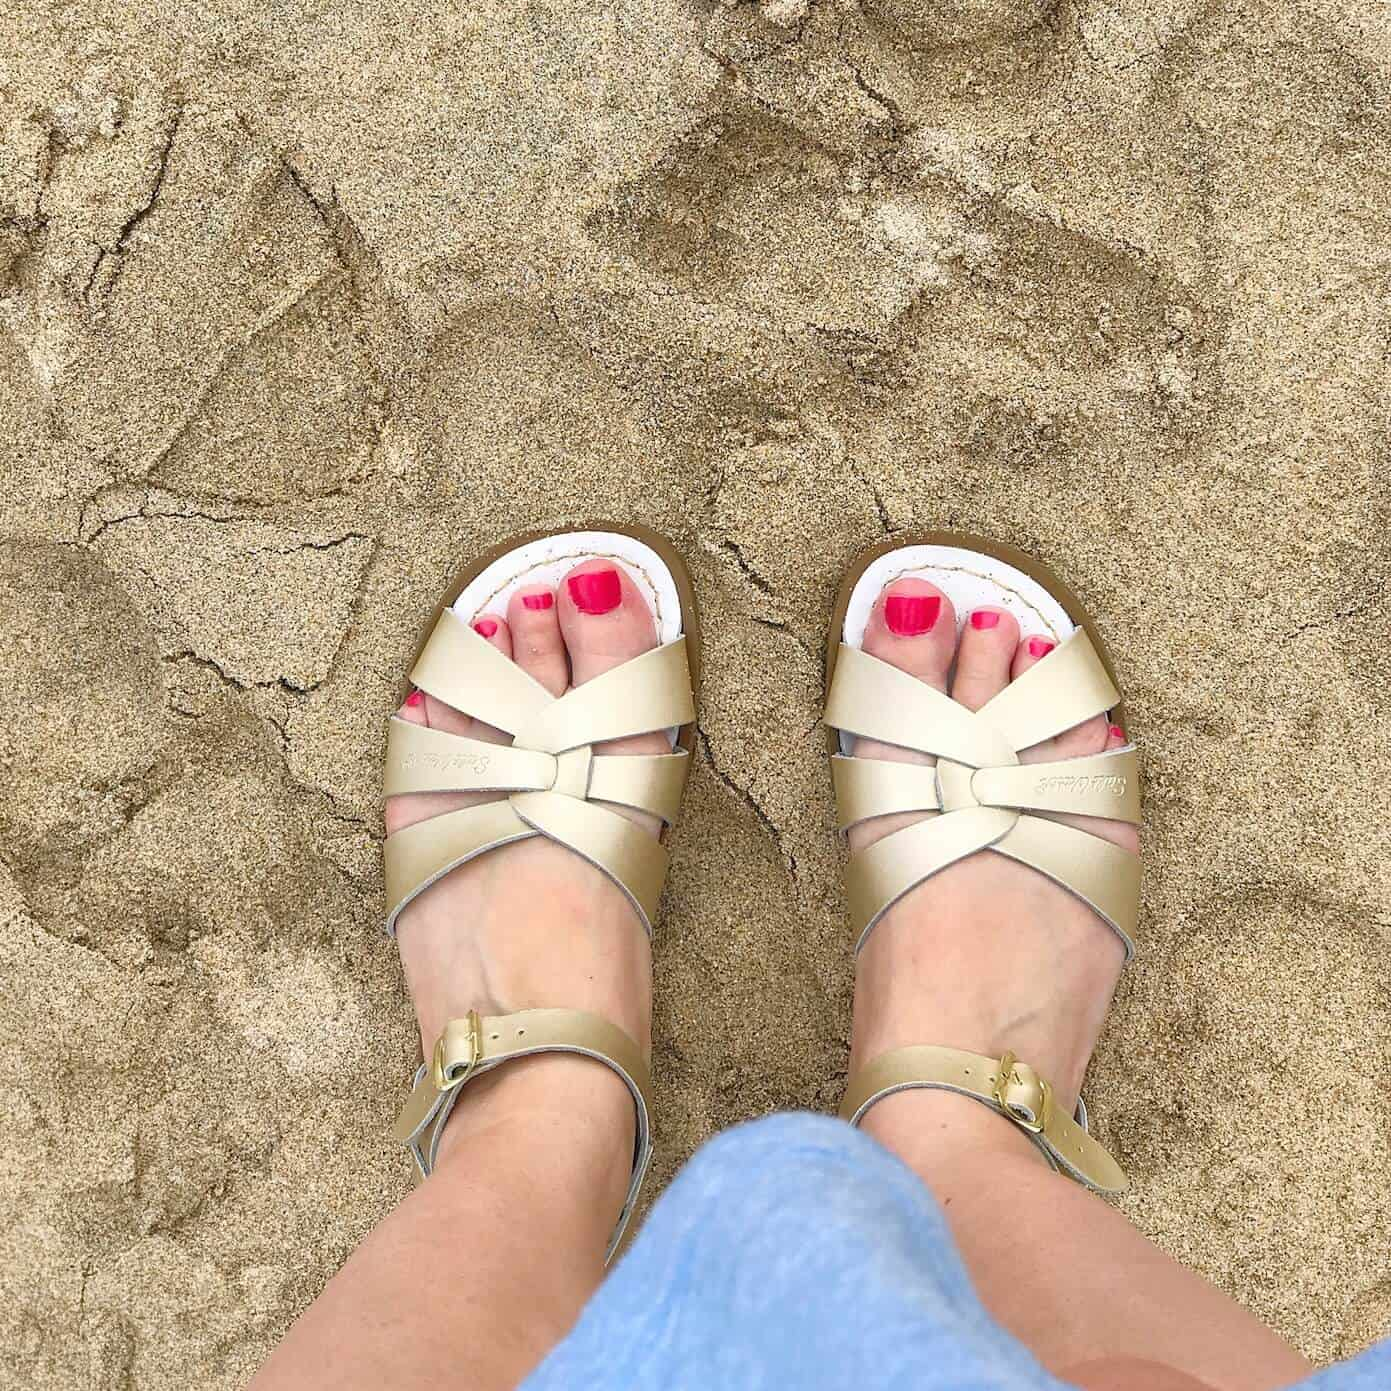 Original Gold Salt-Water Sandals on sand